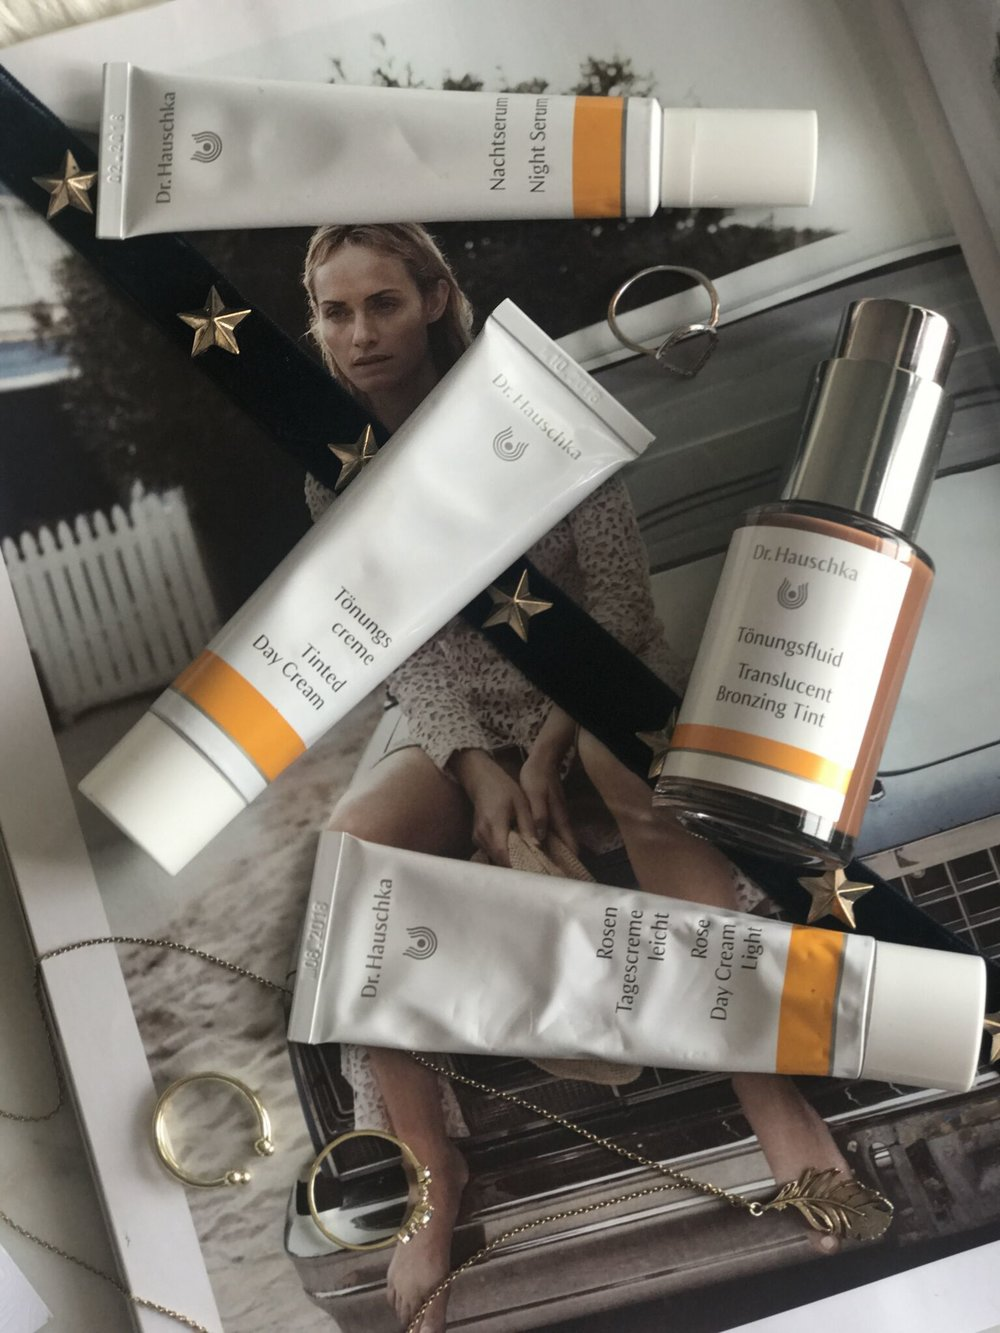 Dr Hauschka Skincare Range, The Creative Larder, Beauty blogger review.